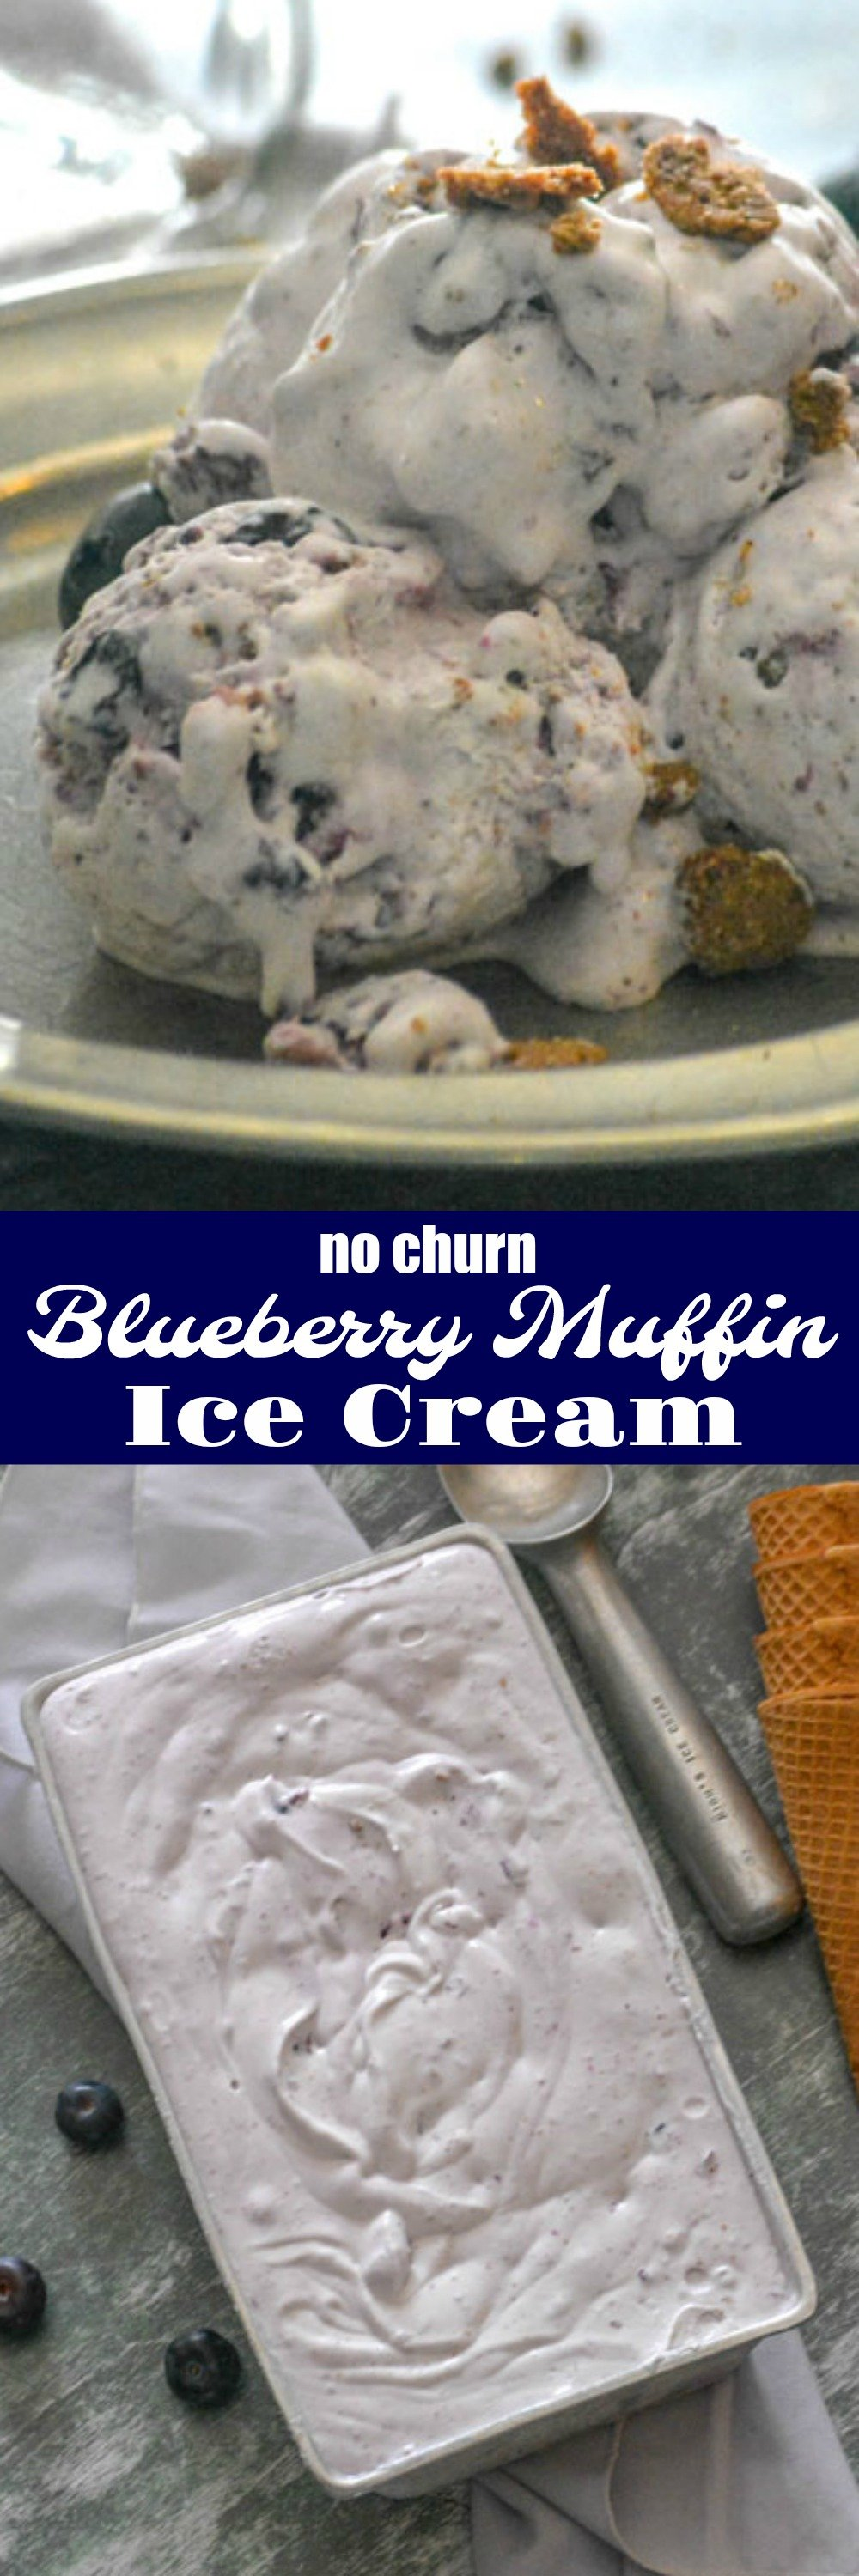 A quick & easy, rich & creamy dessert, this No Churn Blueberry Muffin Ice Cream features a fresh blueberry syrup swirl with a heavy sprinkling or homemade cinnamon streusel. It's a blueberry muffin in each bite (but better, because ice cream!), and the best way to enjoy breakfast for dessert.